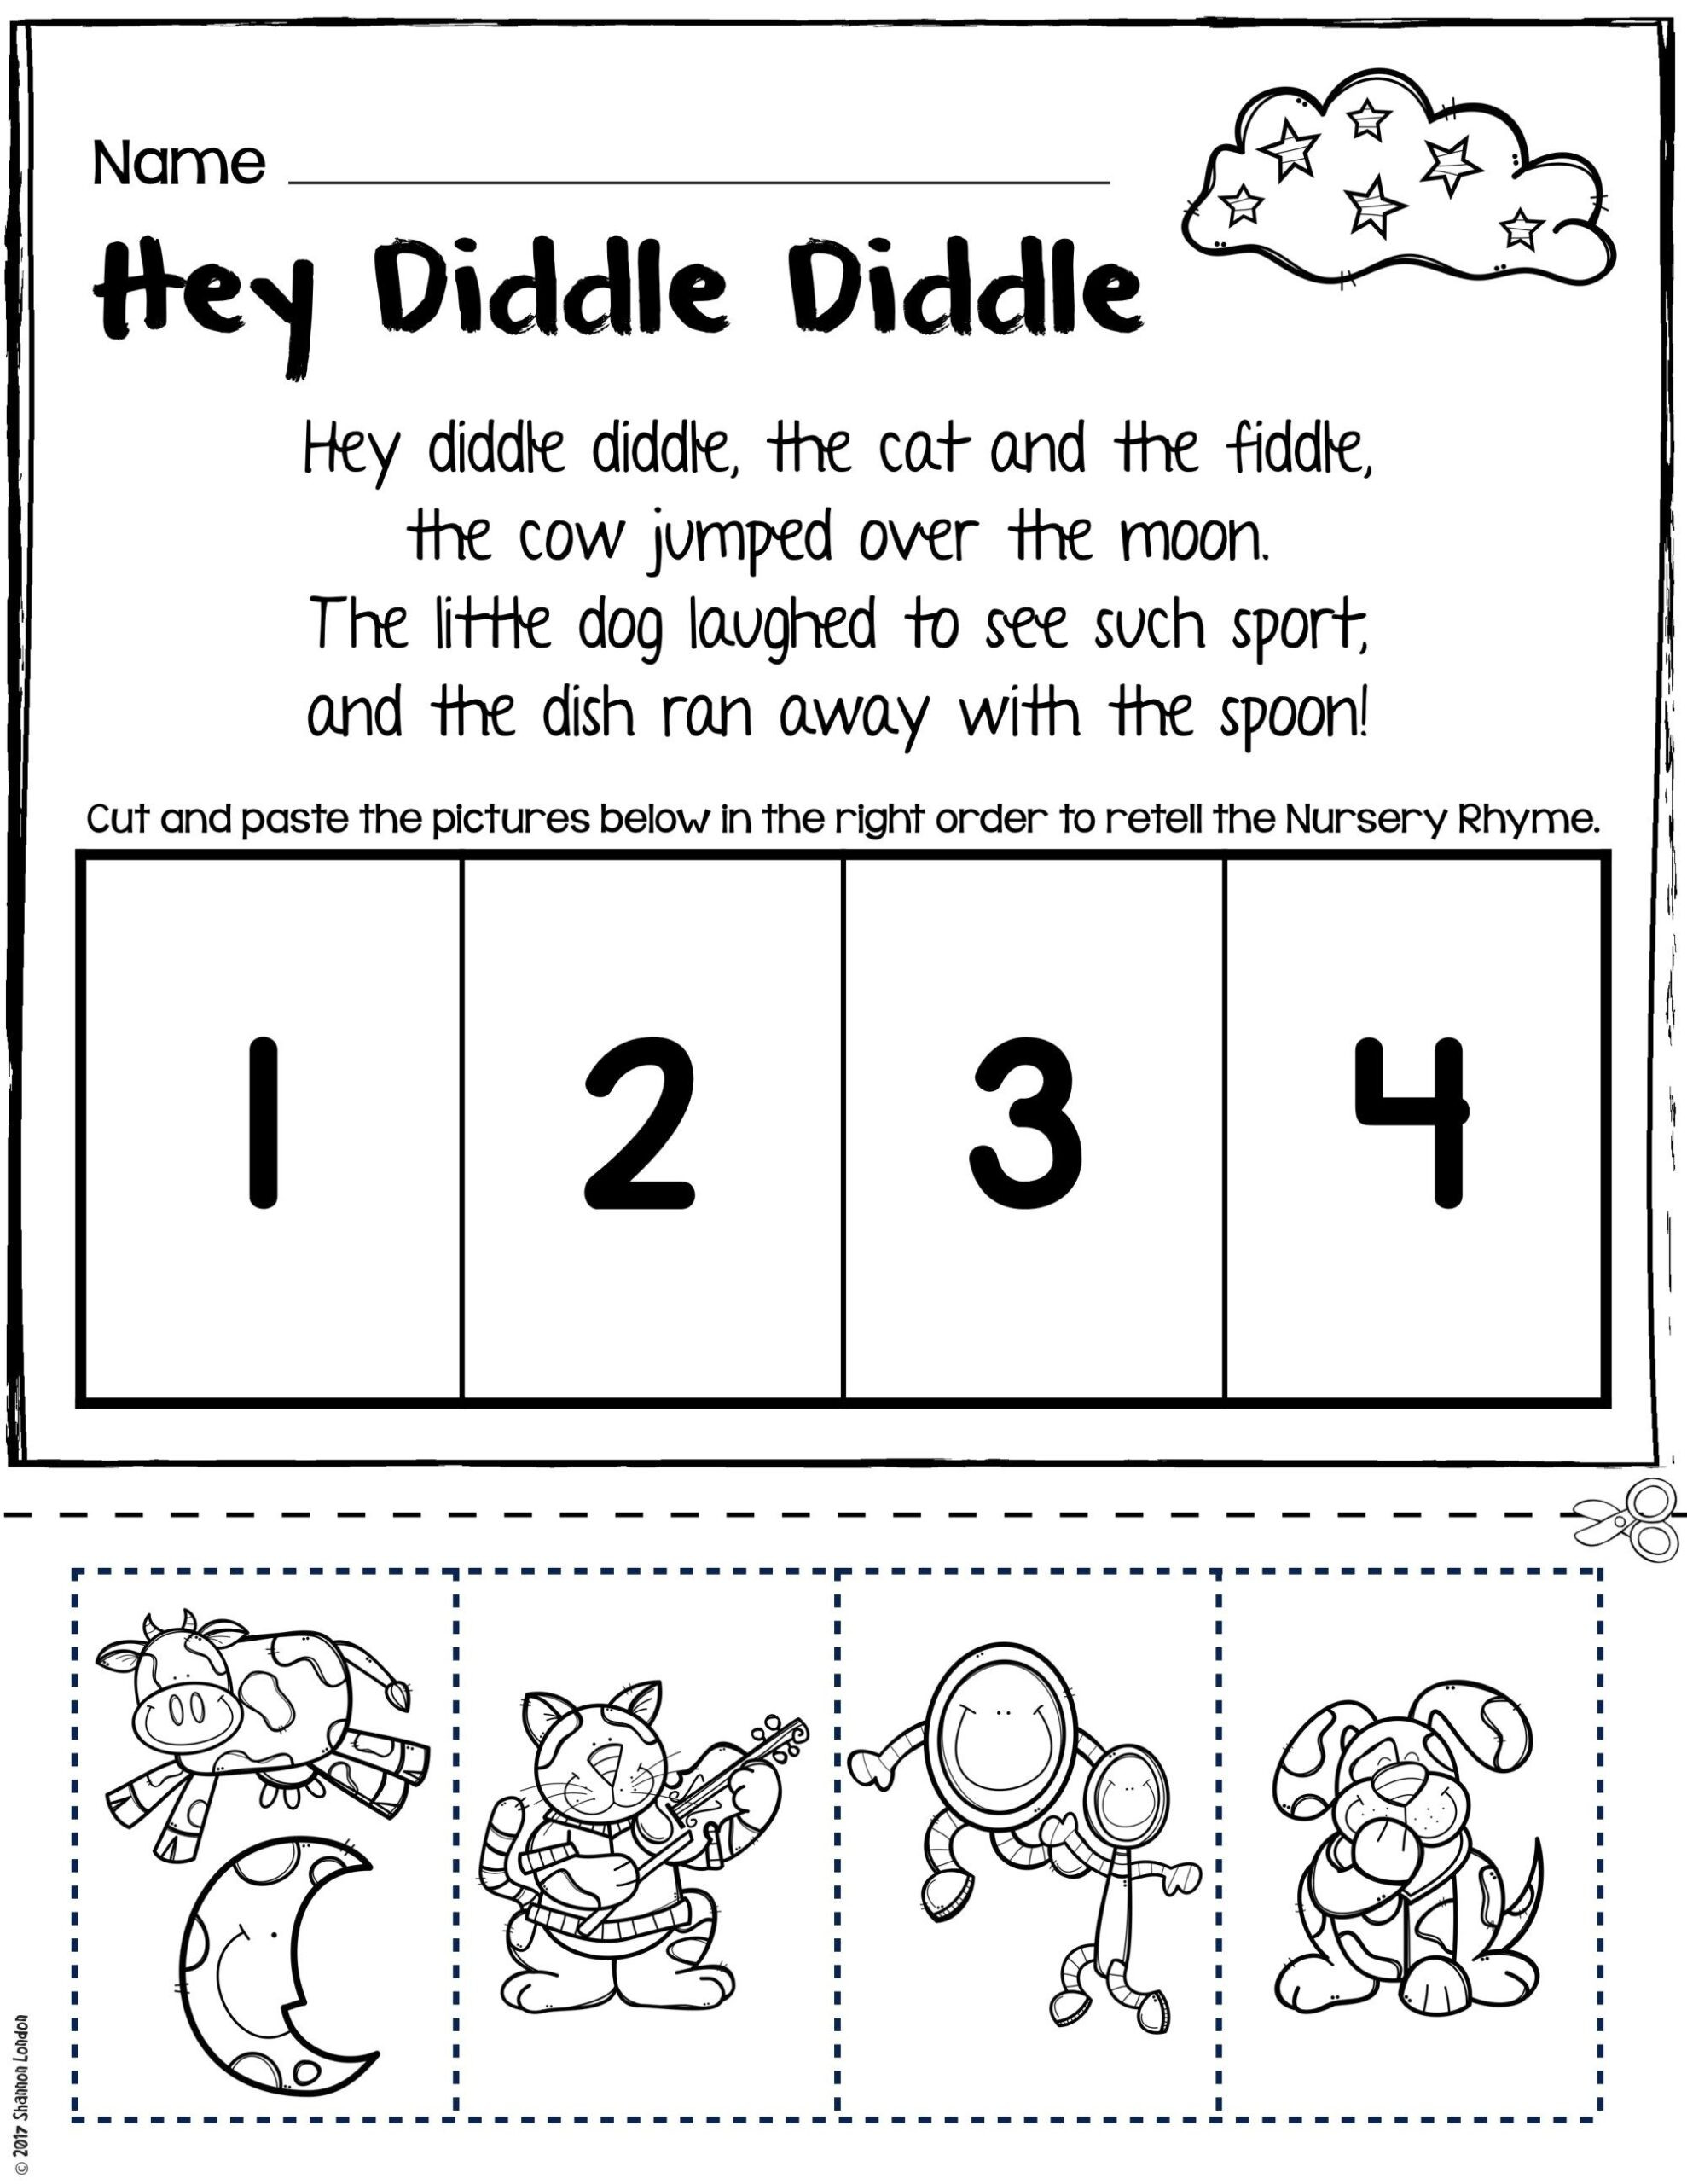 Rhyming Worksheets for Preschoolers Free Rhyming Worksheets for Preschool Worksheet Teeth Kindy